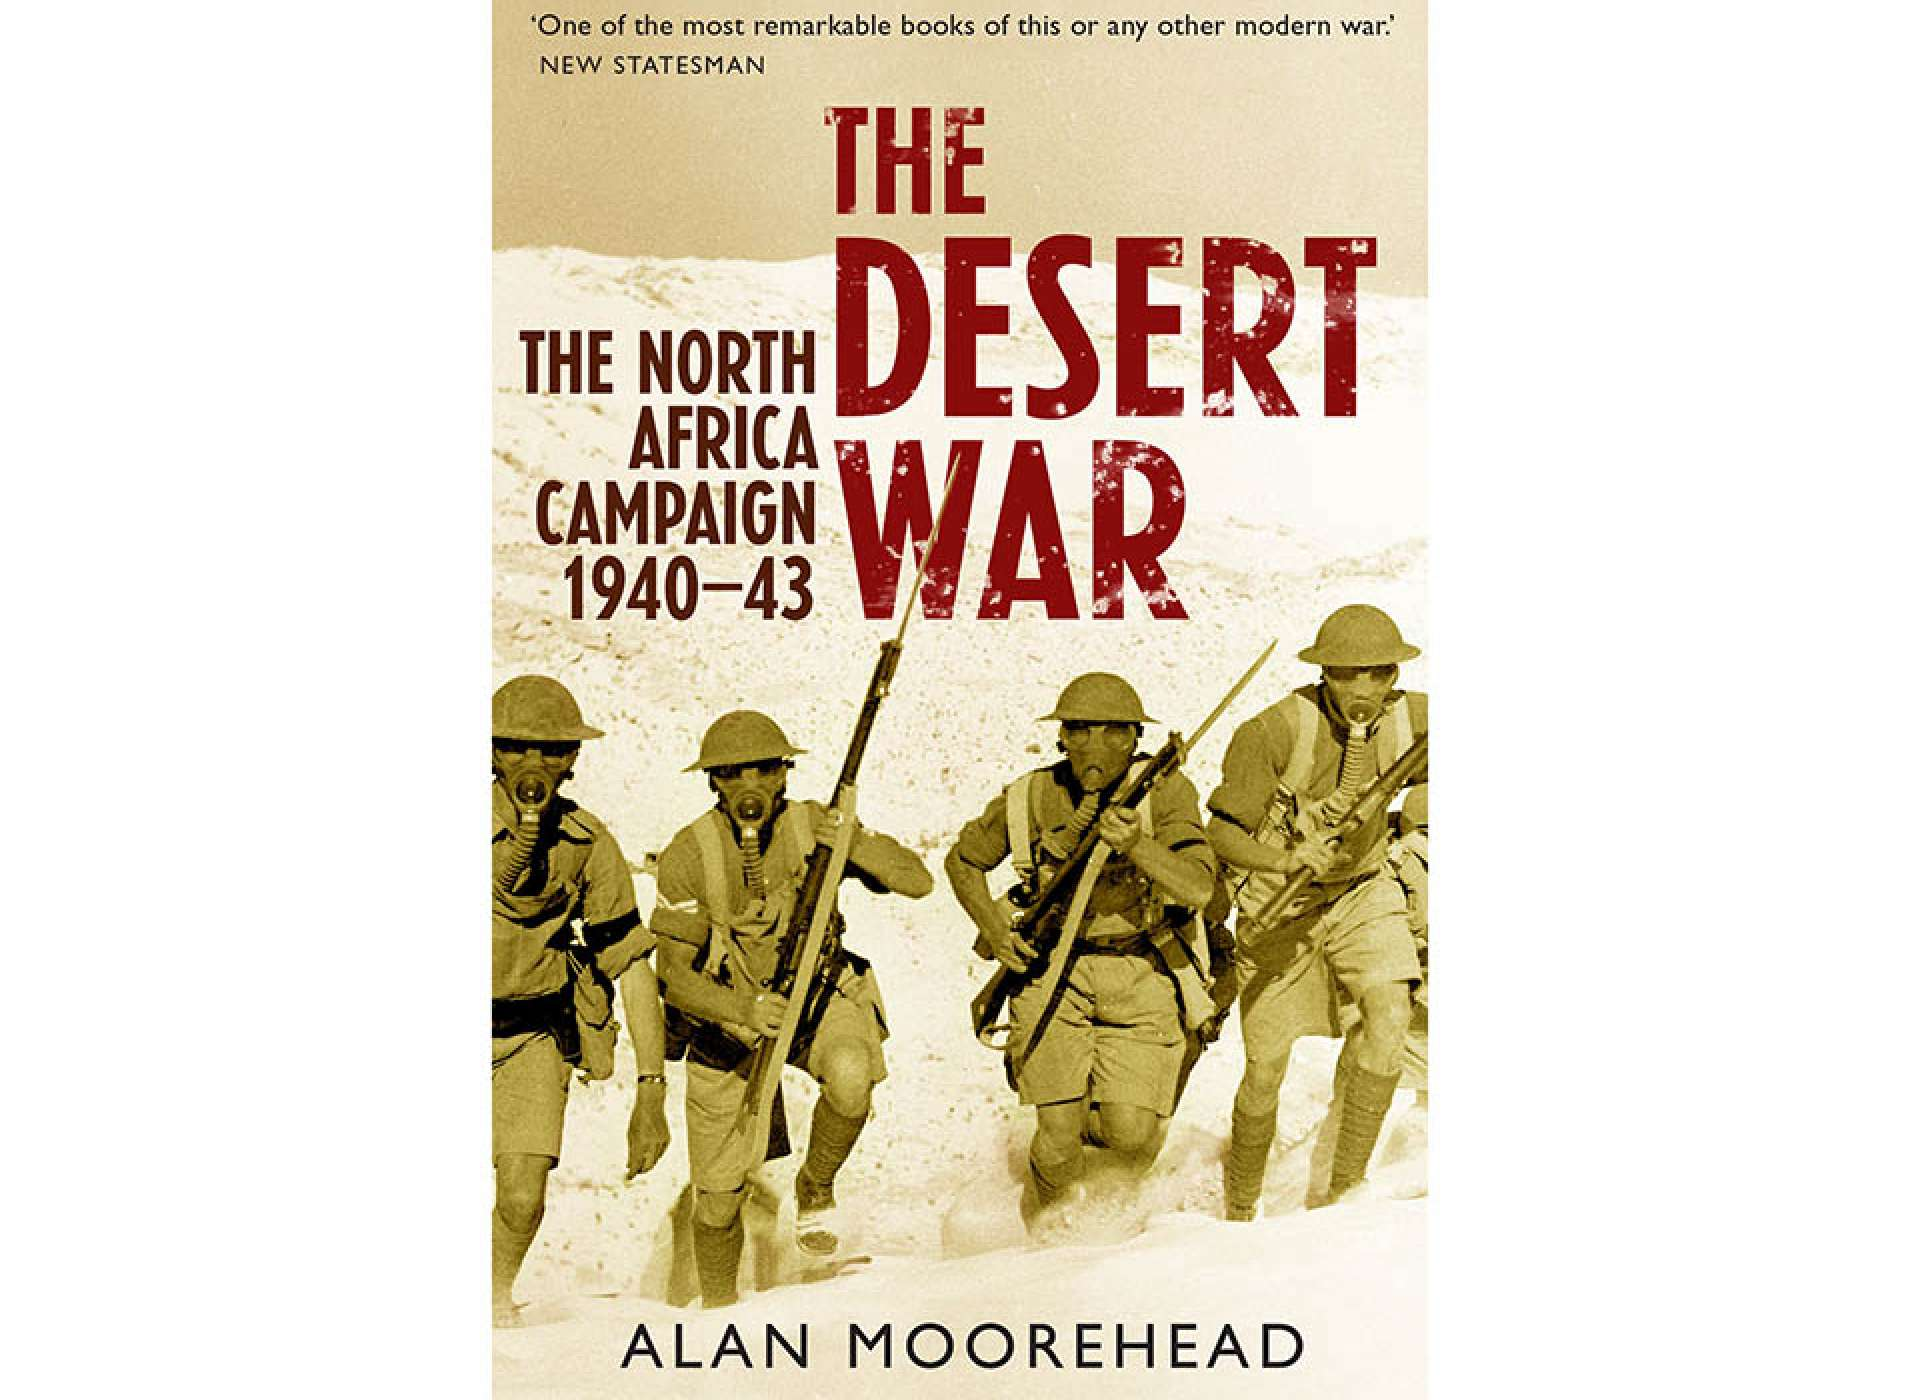 Moorehead The Desert War. Courtesy of Amazon.com